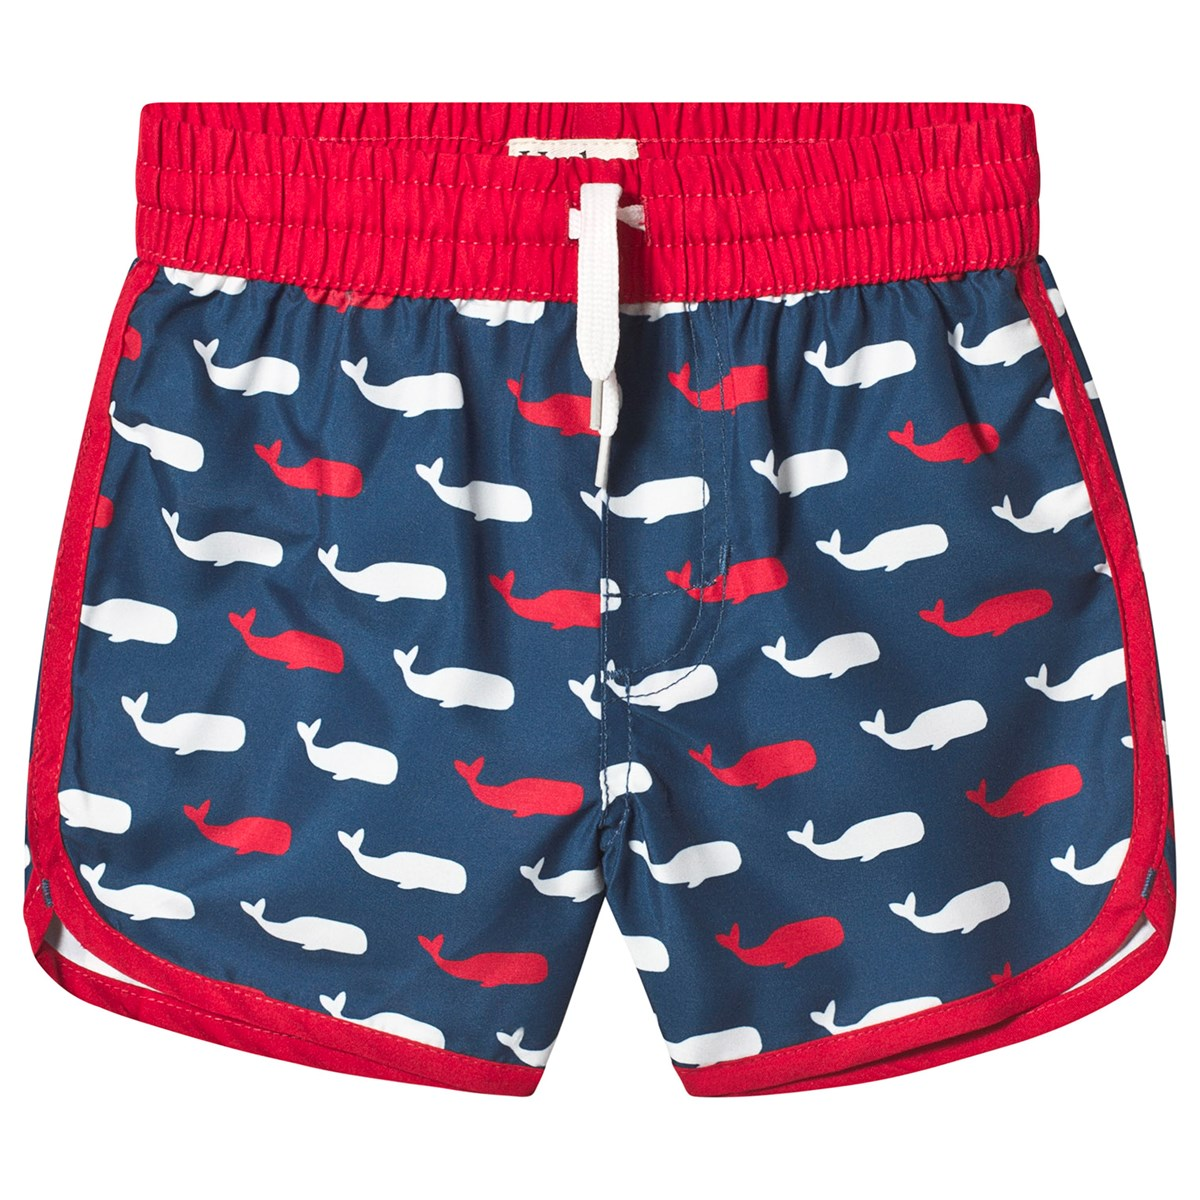 40a306a9f5722 Hatley - Navy Whale Pod Swim Trunks - Babyshop.com